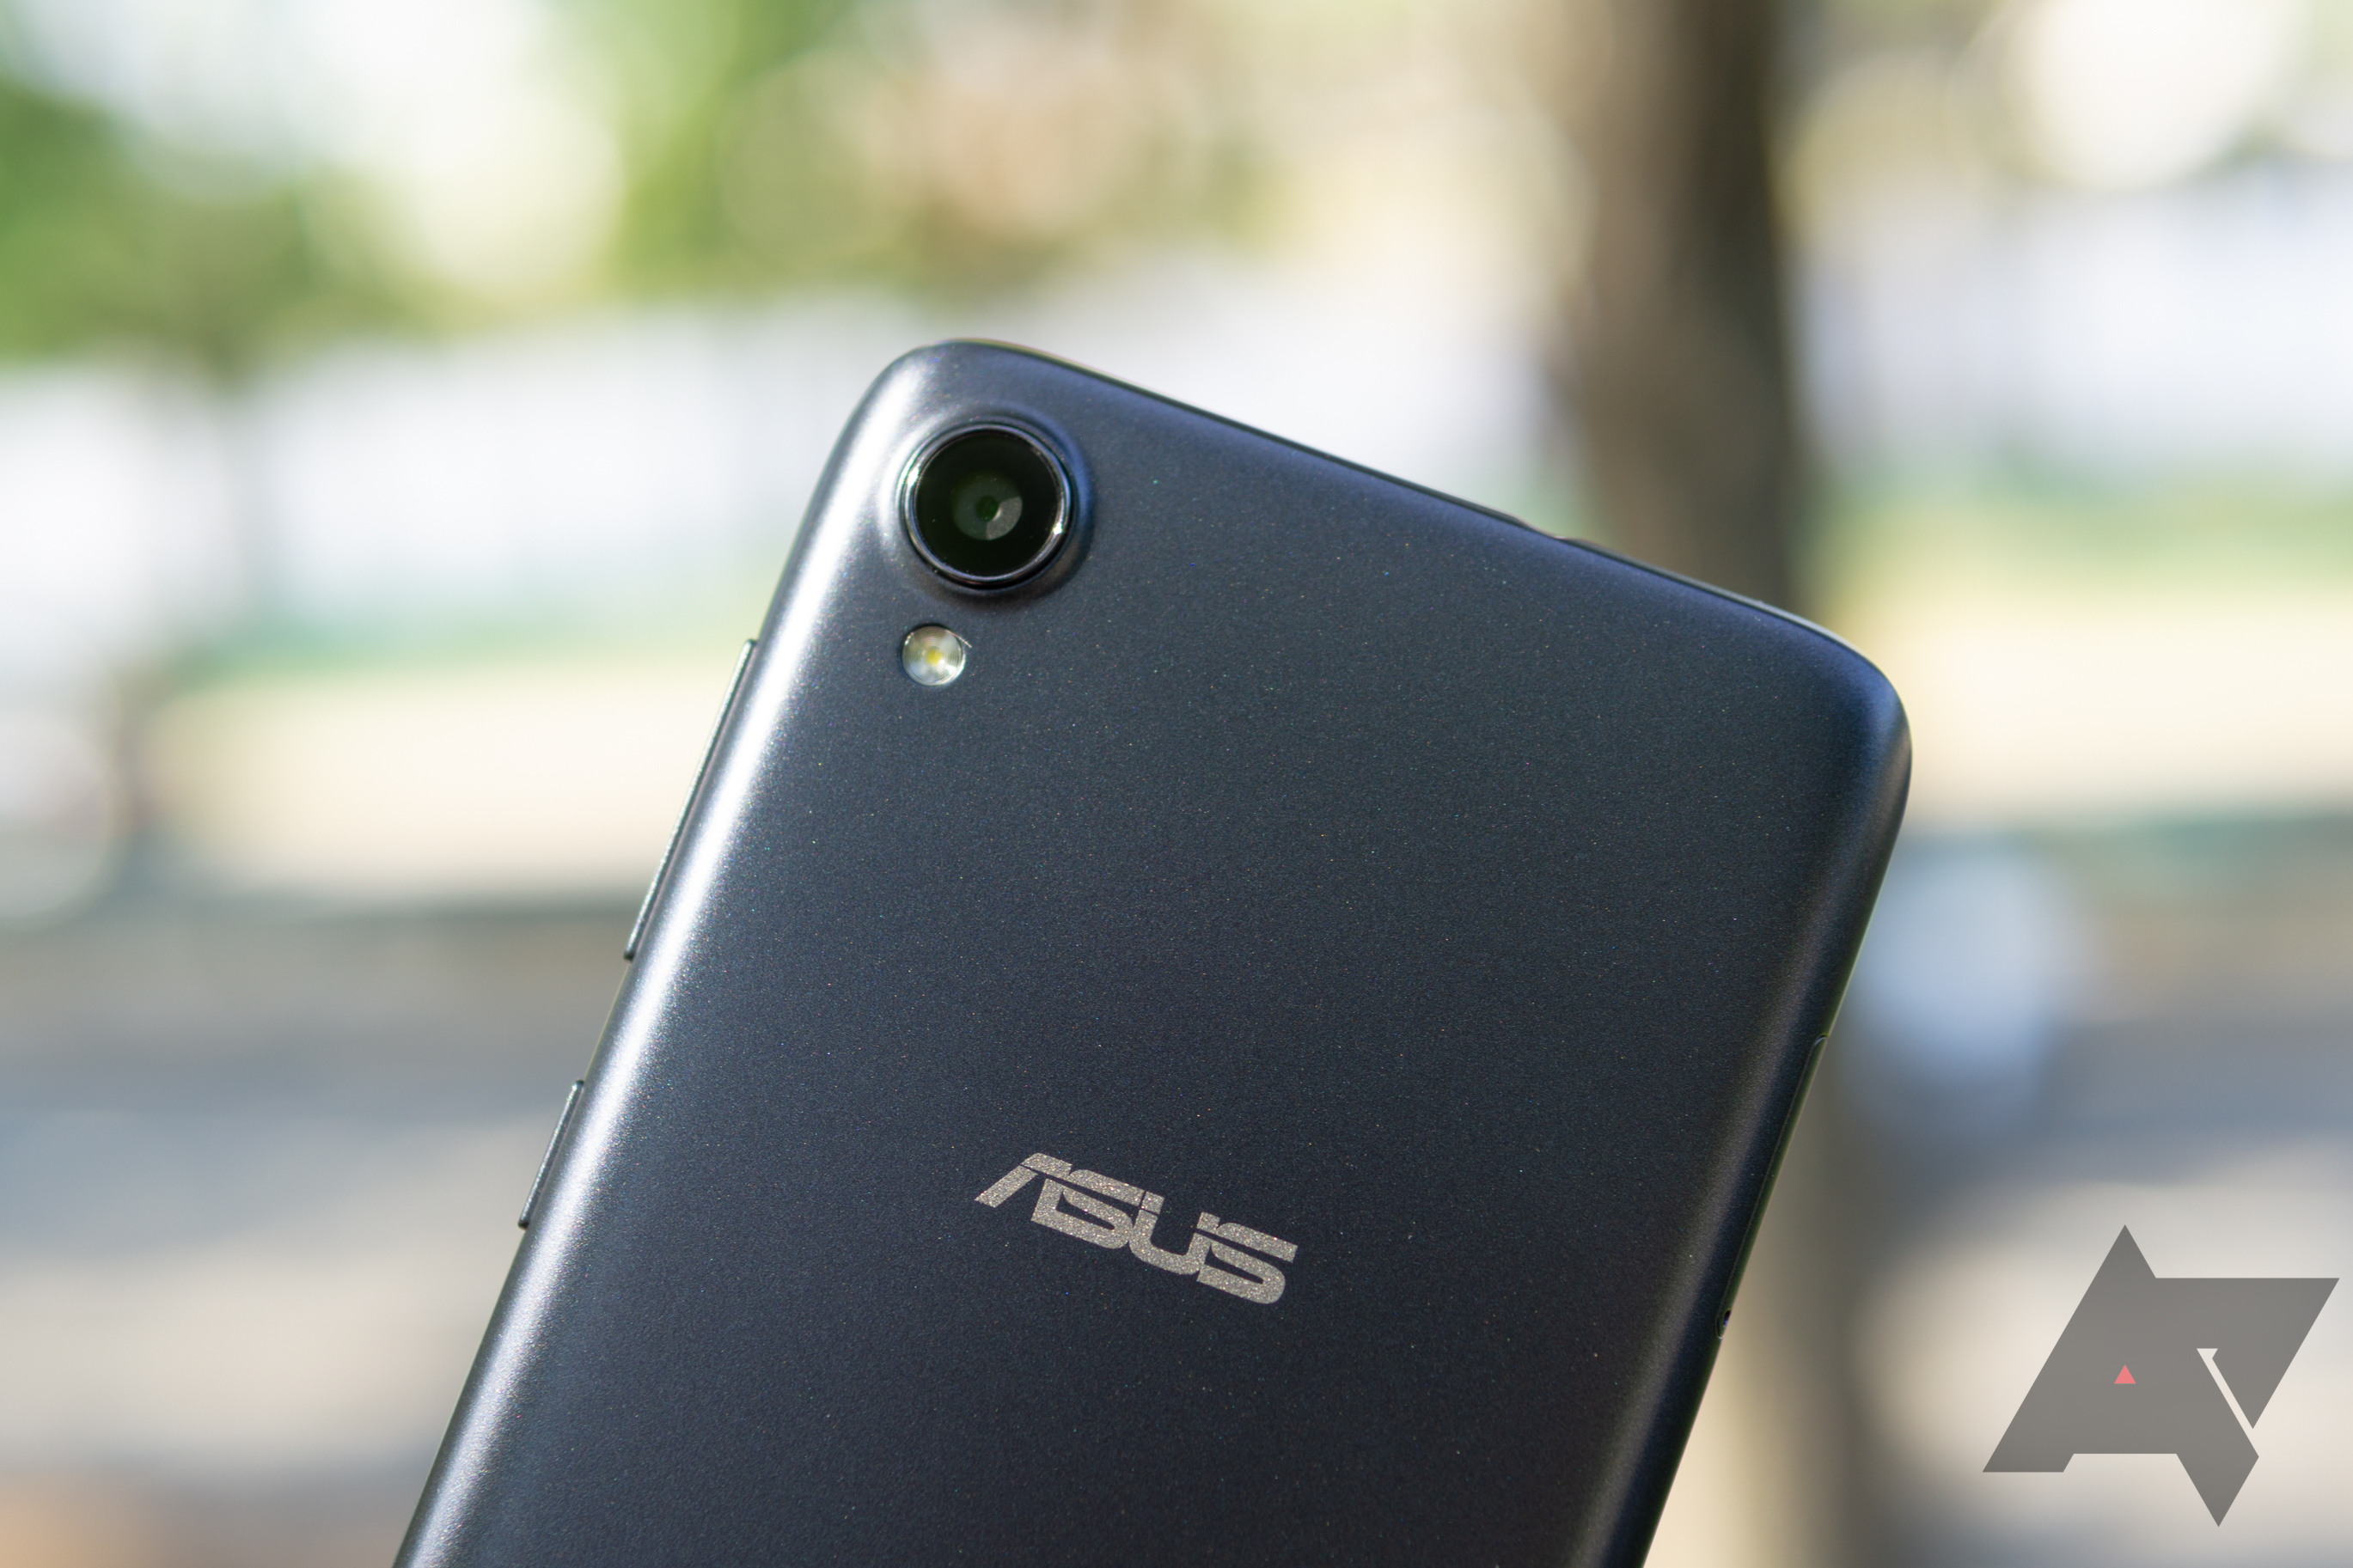 ASUS Zenfone Live L1 review: The best phone you can get for $110